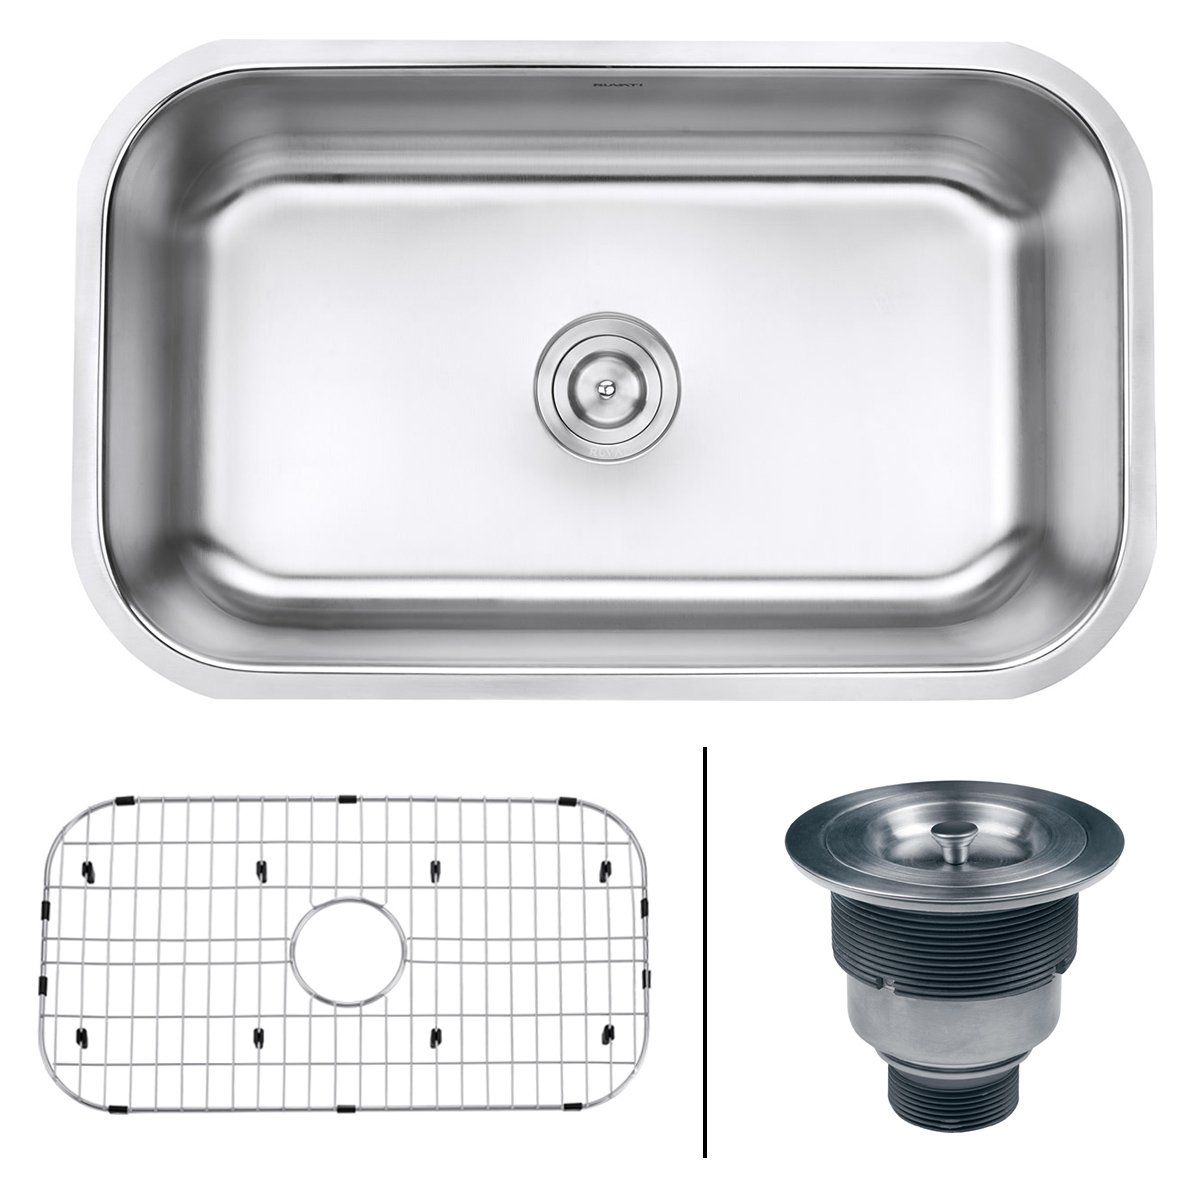 Top Kitchen Sinks Best rated in kitchen sinks helpful customer reviews amazon ruvati rvm4250 undermount 16 gauge 30 kitchen single bowl sink stainless steel workwithnaturefo